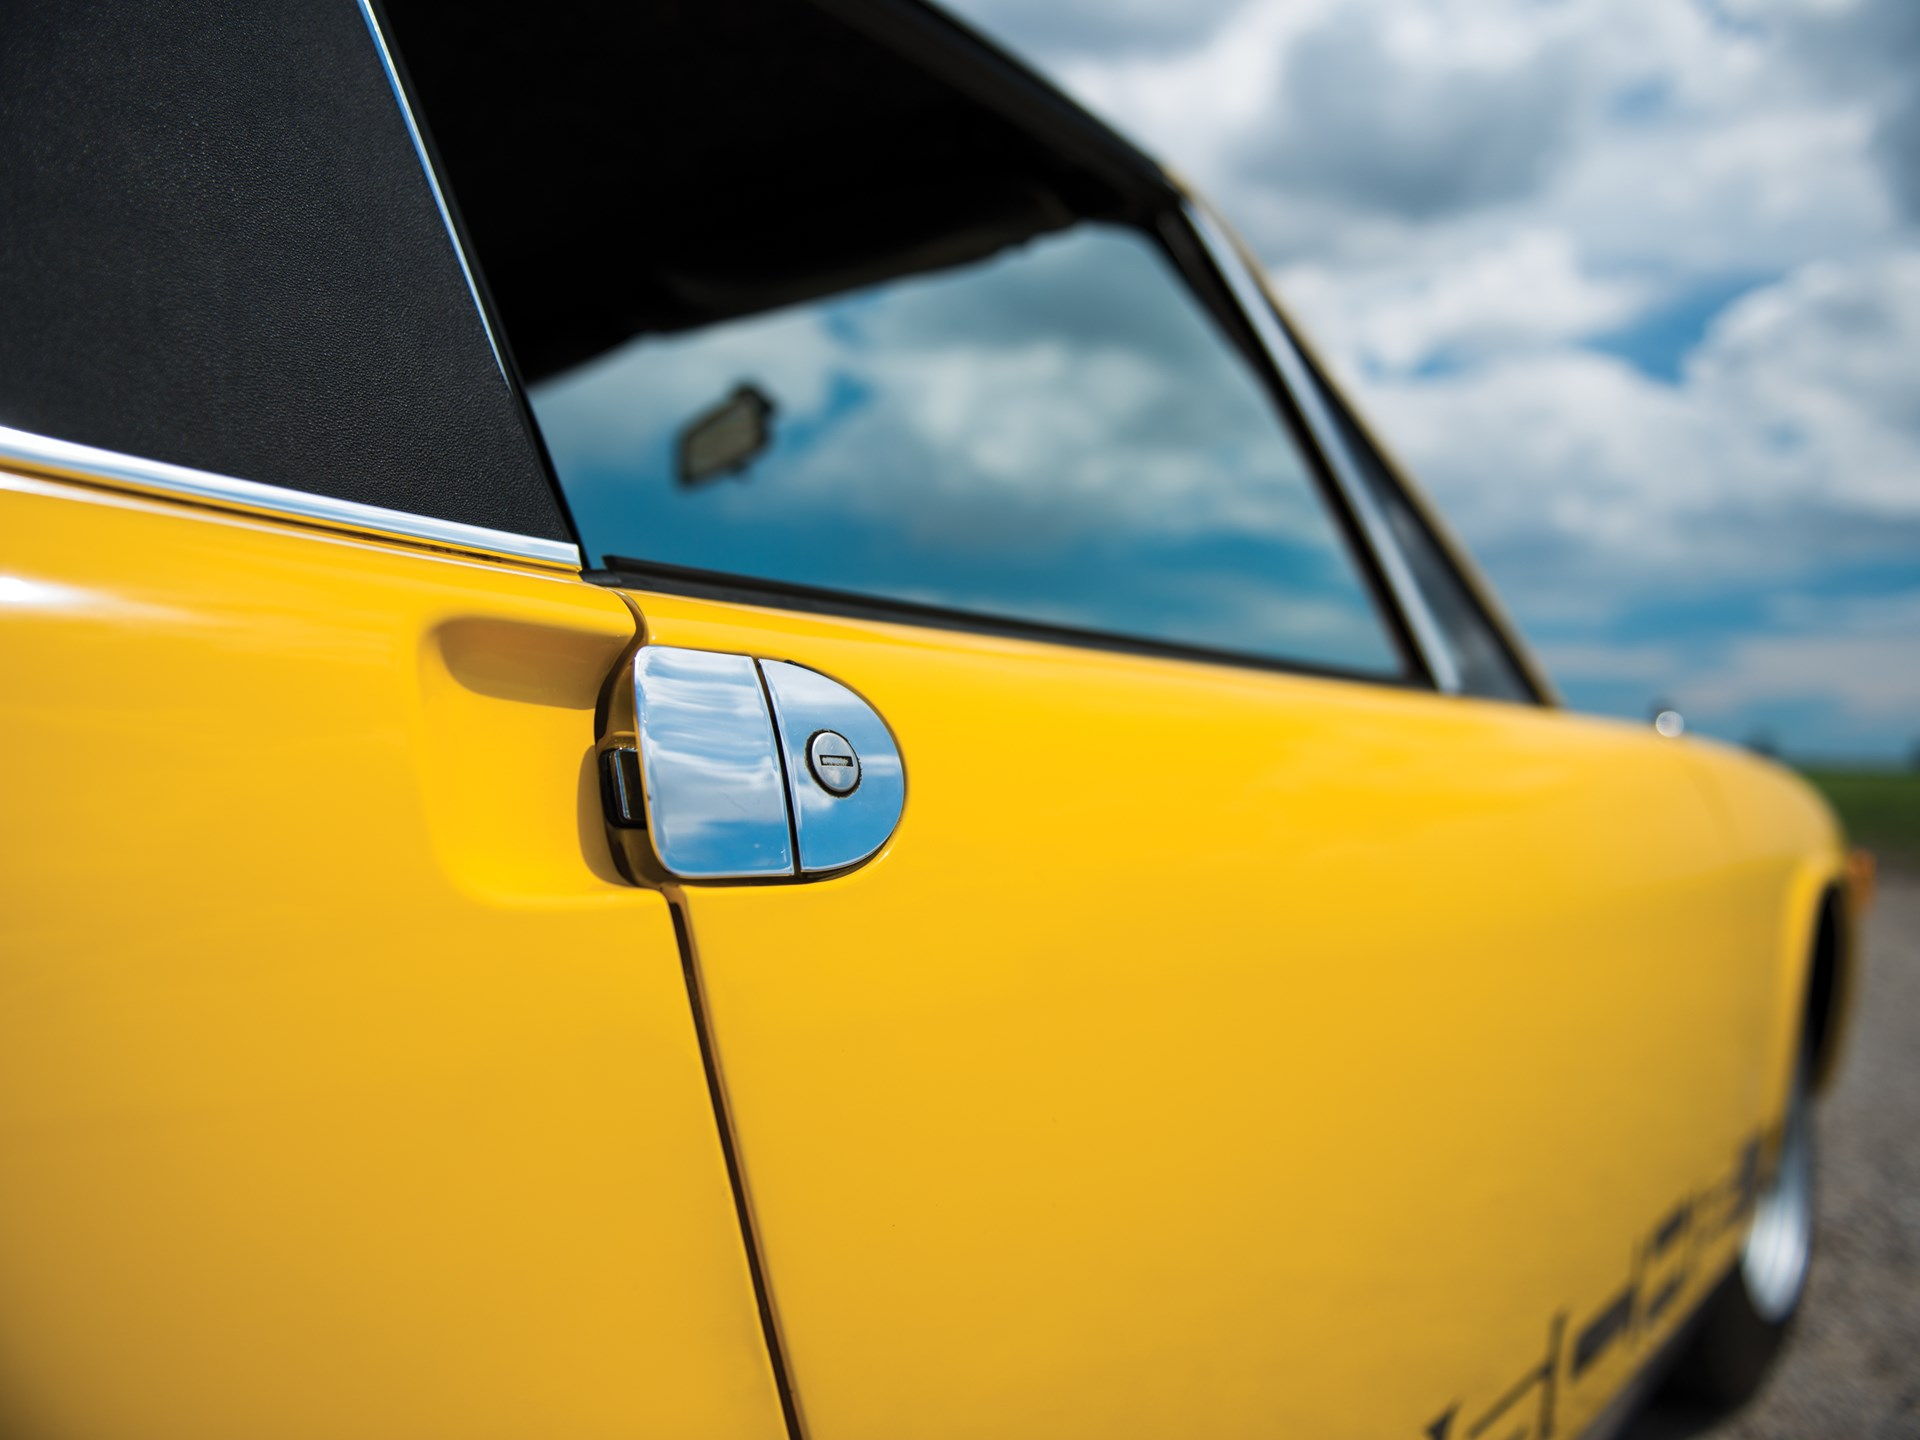 1975 Porsche 914 yellow door